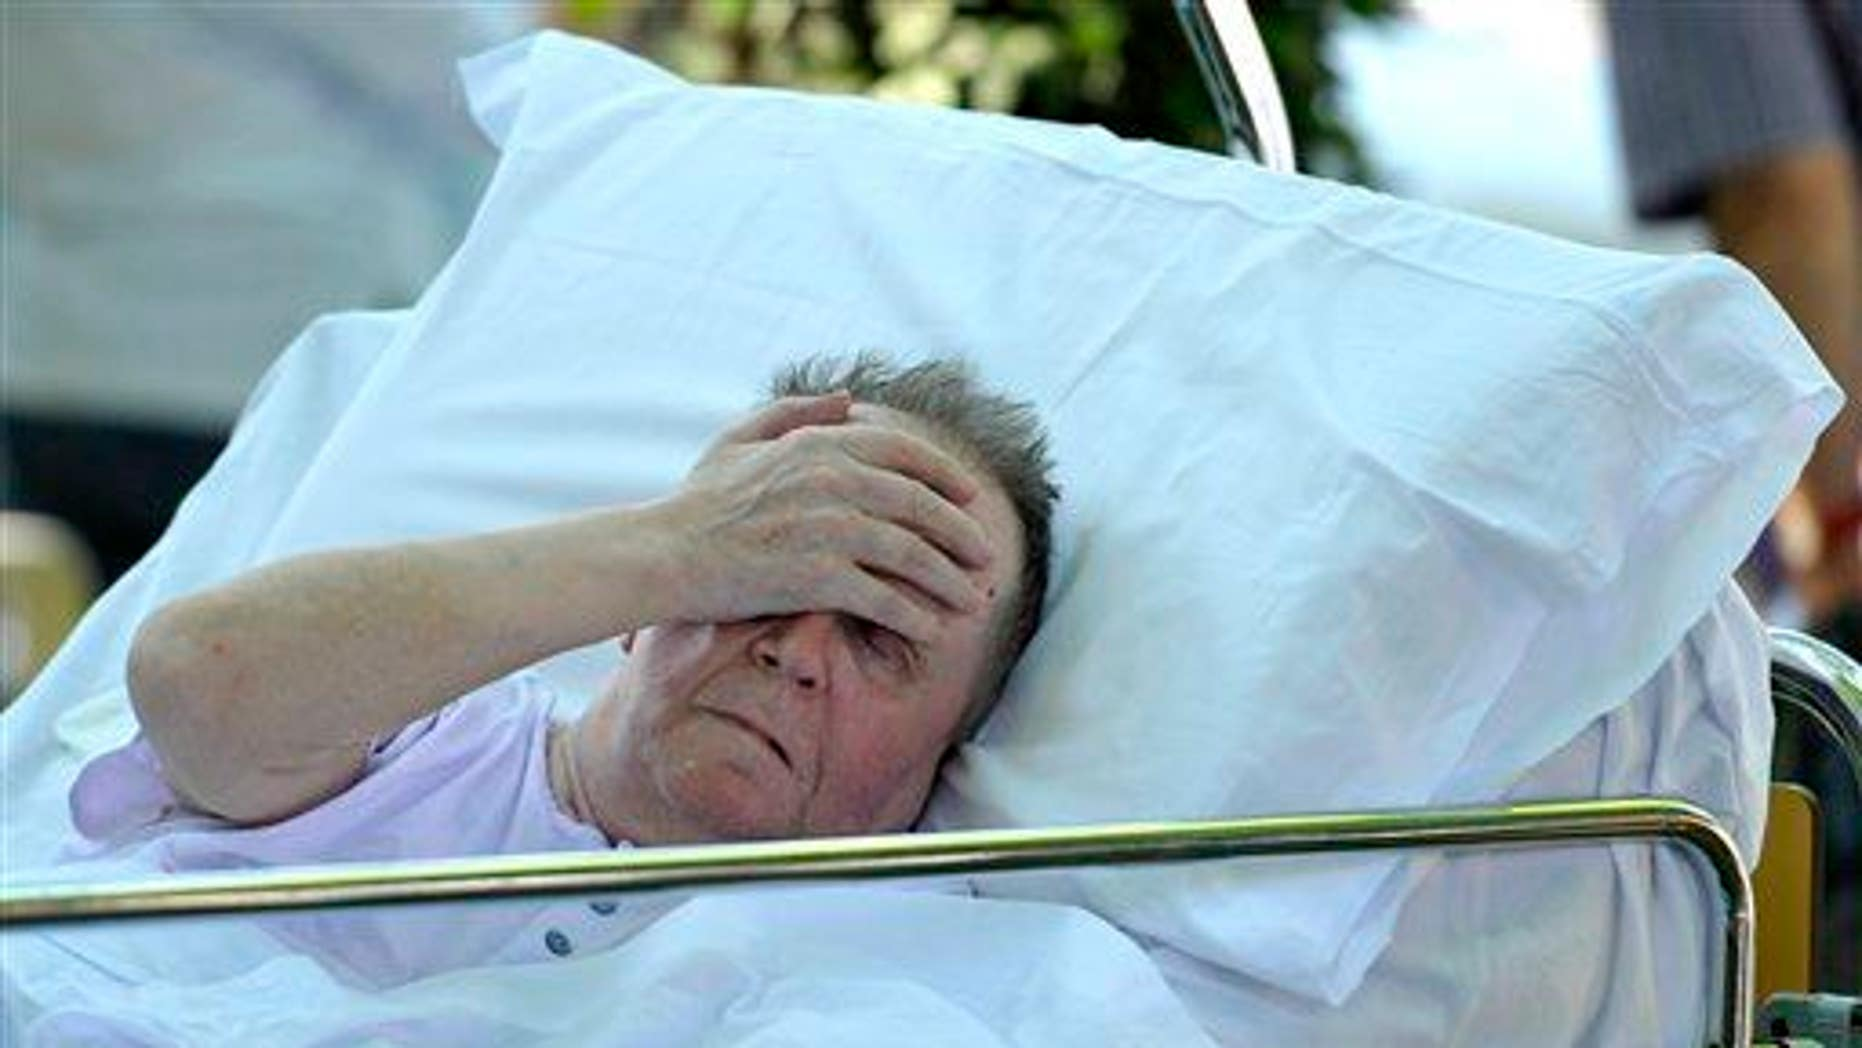 An elderly man lays on a bed in Mirandola, northern Italy, Tuesday, May 29, 2012.